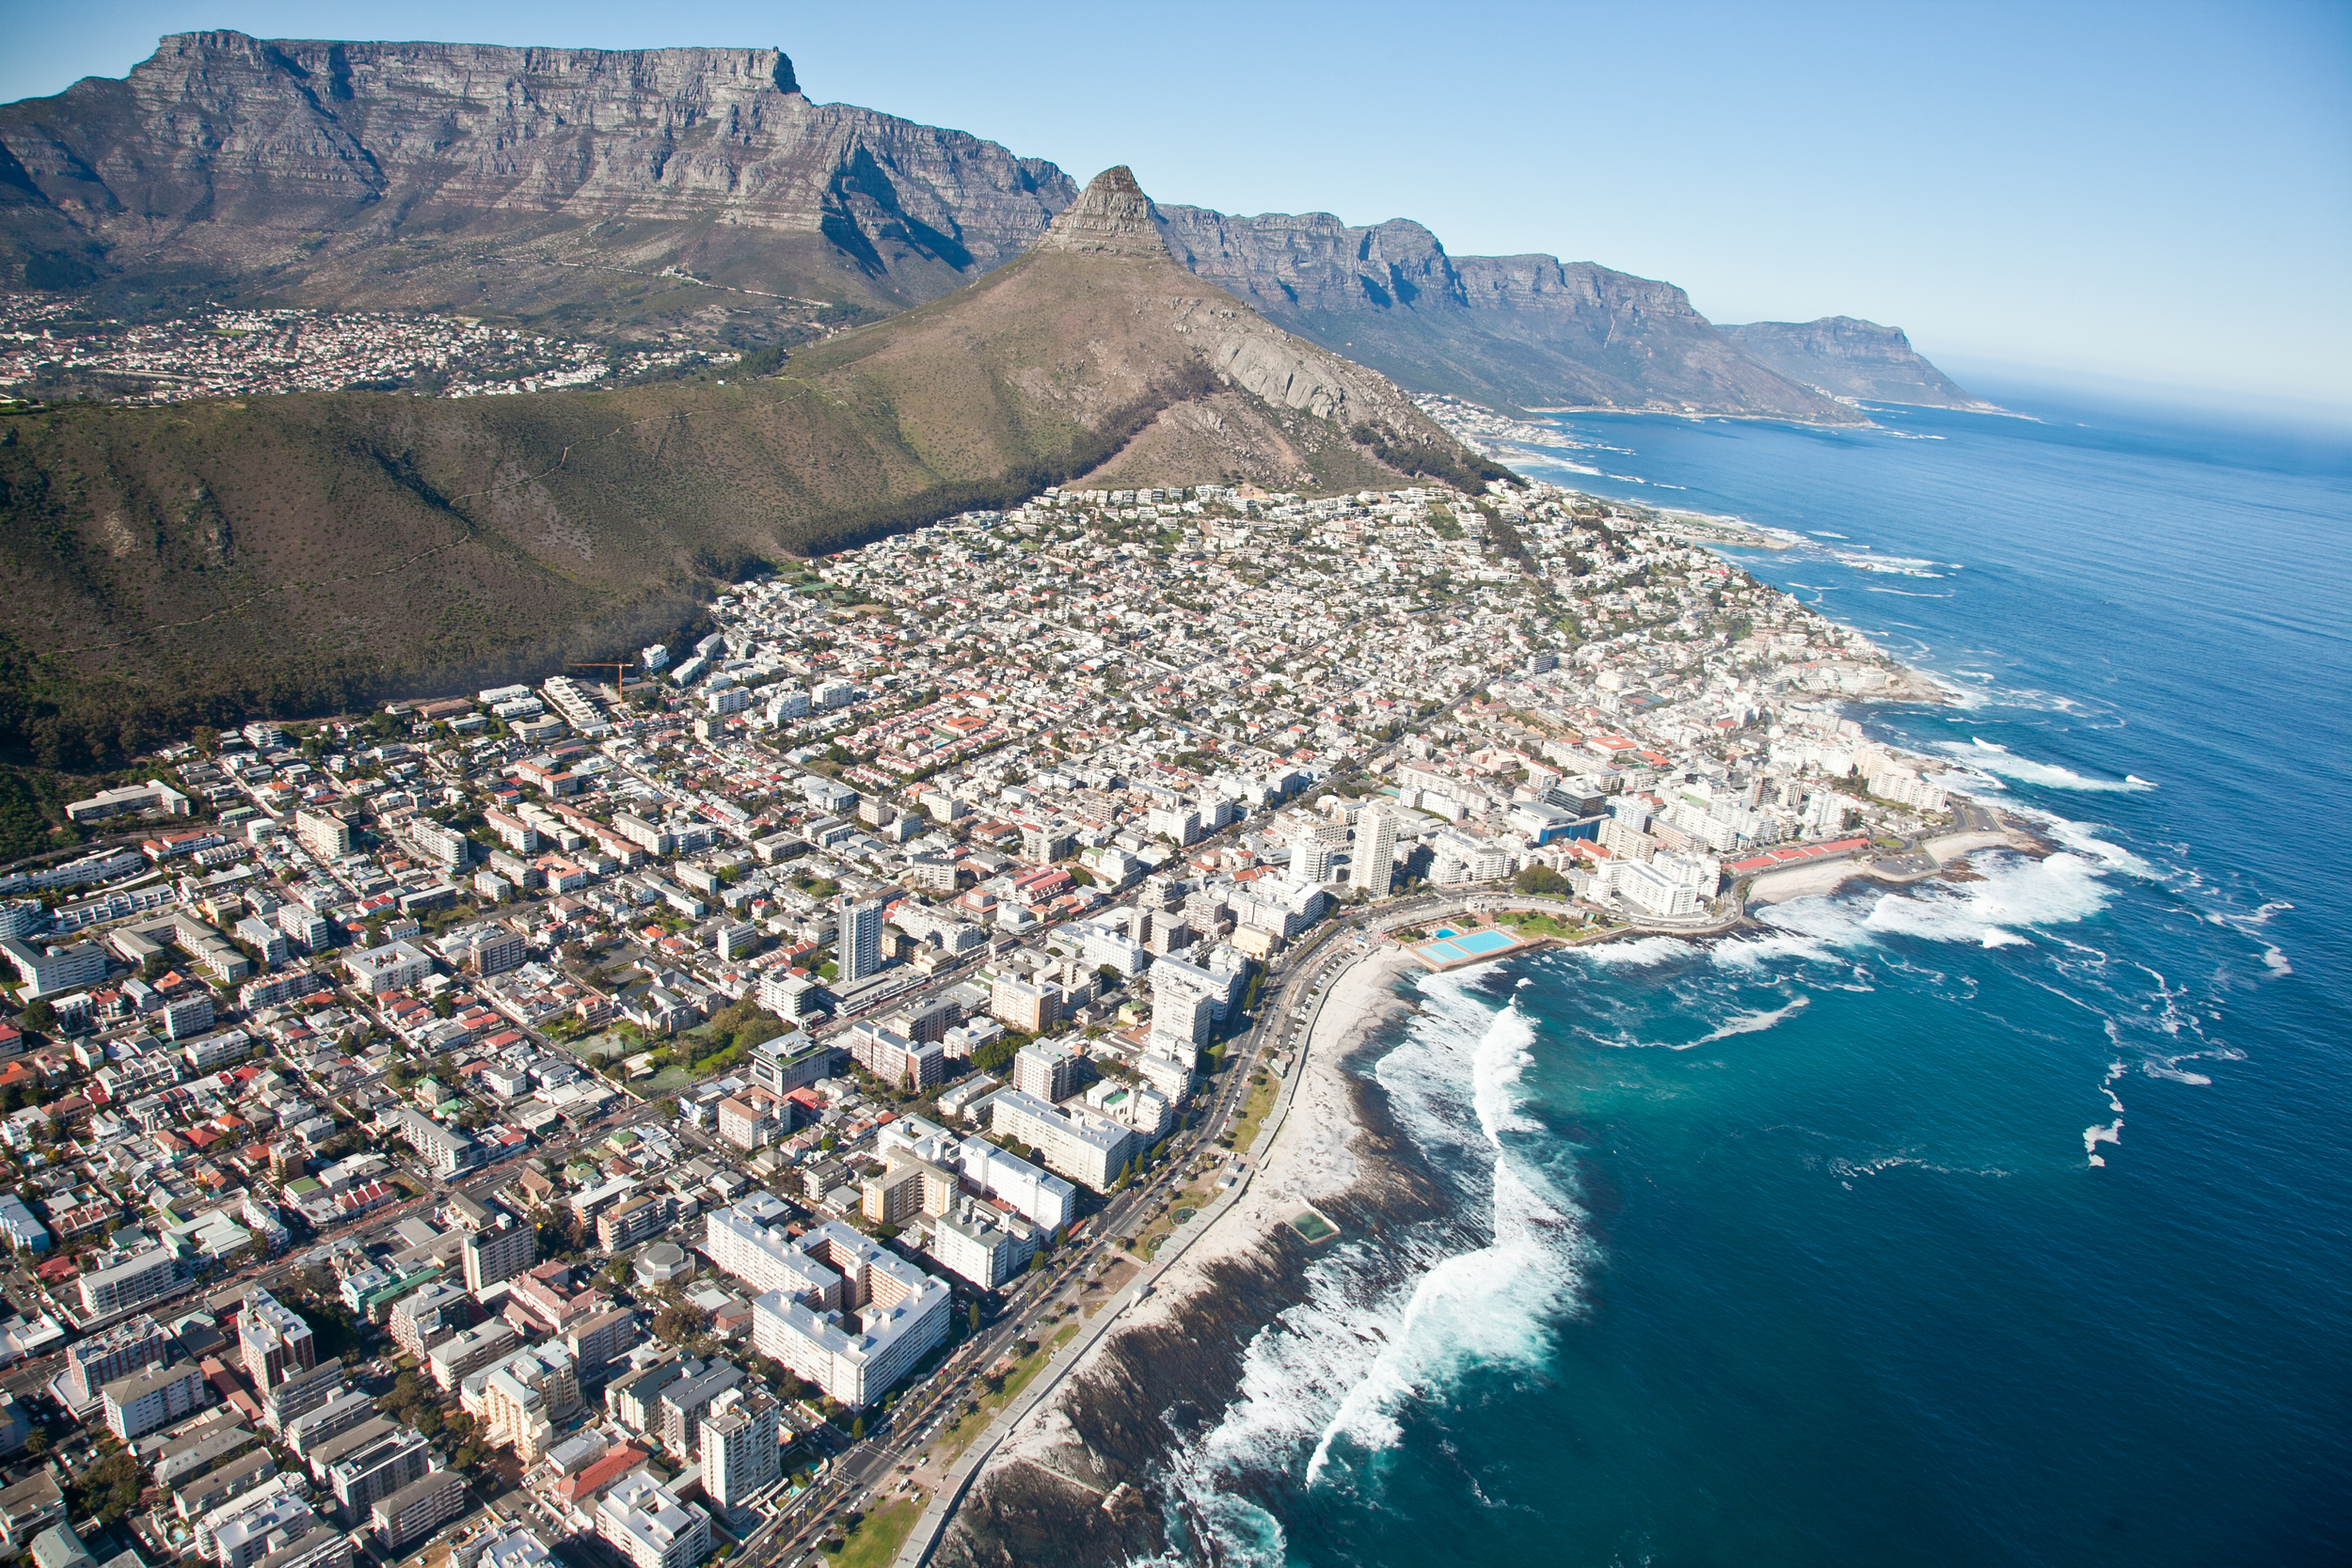 IMG_4837-cape-town-south-africa-helicopter-ride-trisa-taro.jpg